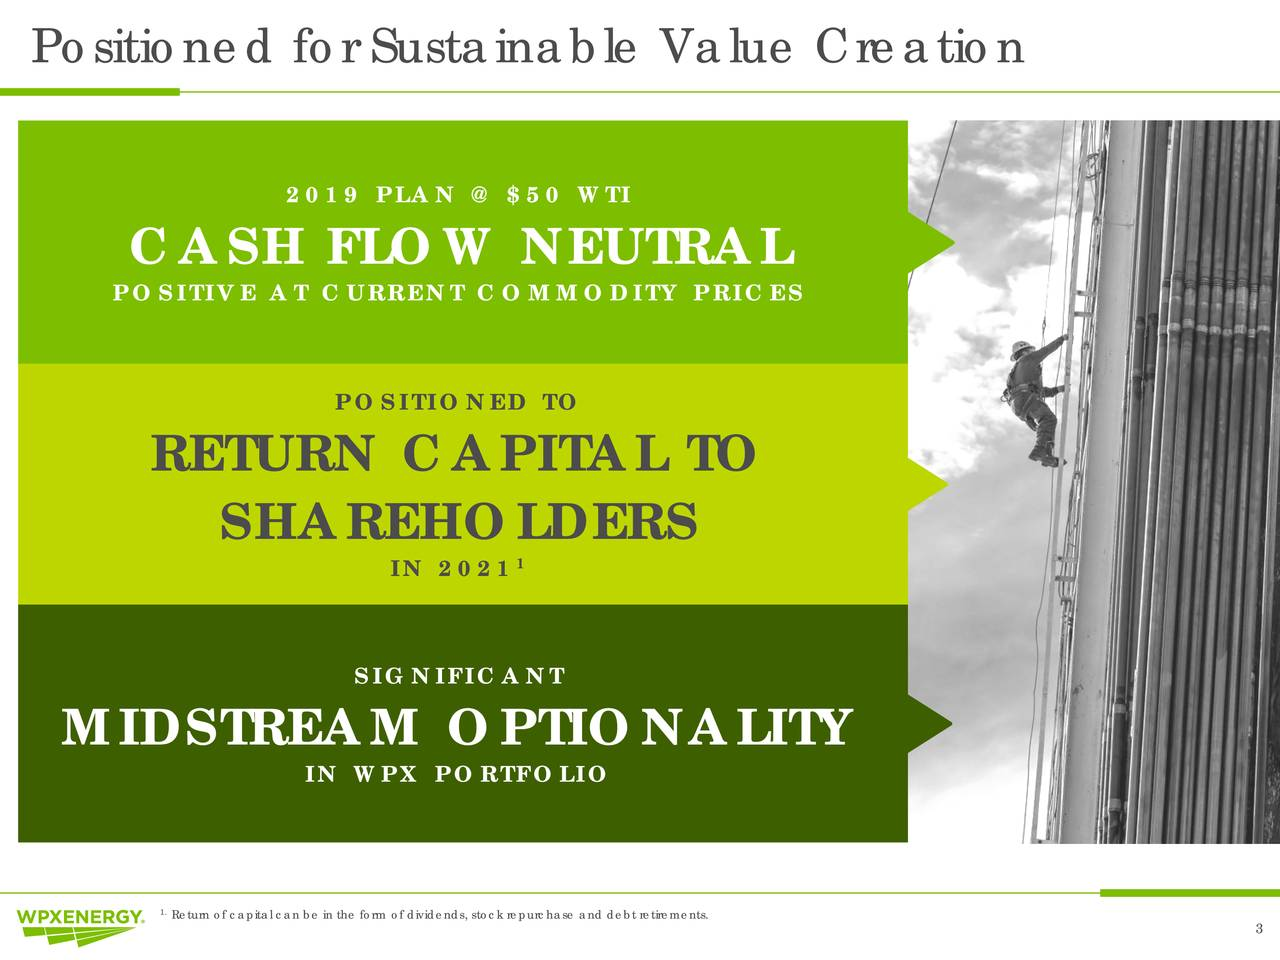 2019 PLAN @ $50 WTI CASH FLOW NEUTRAL POSITIVE AT CURRENT COMMODITY PRICES POSITIONED TO RETURN CAPITAL TO SHAREHOLDERS IN 20211 SIGNIFICANT MIDSTREAM OPTIONALITY IN WPX PORTFOLIO 1Return of capital can be in the form of dividends, stock repurc3ase and debt retirements.